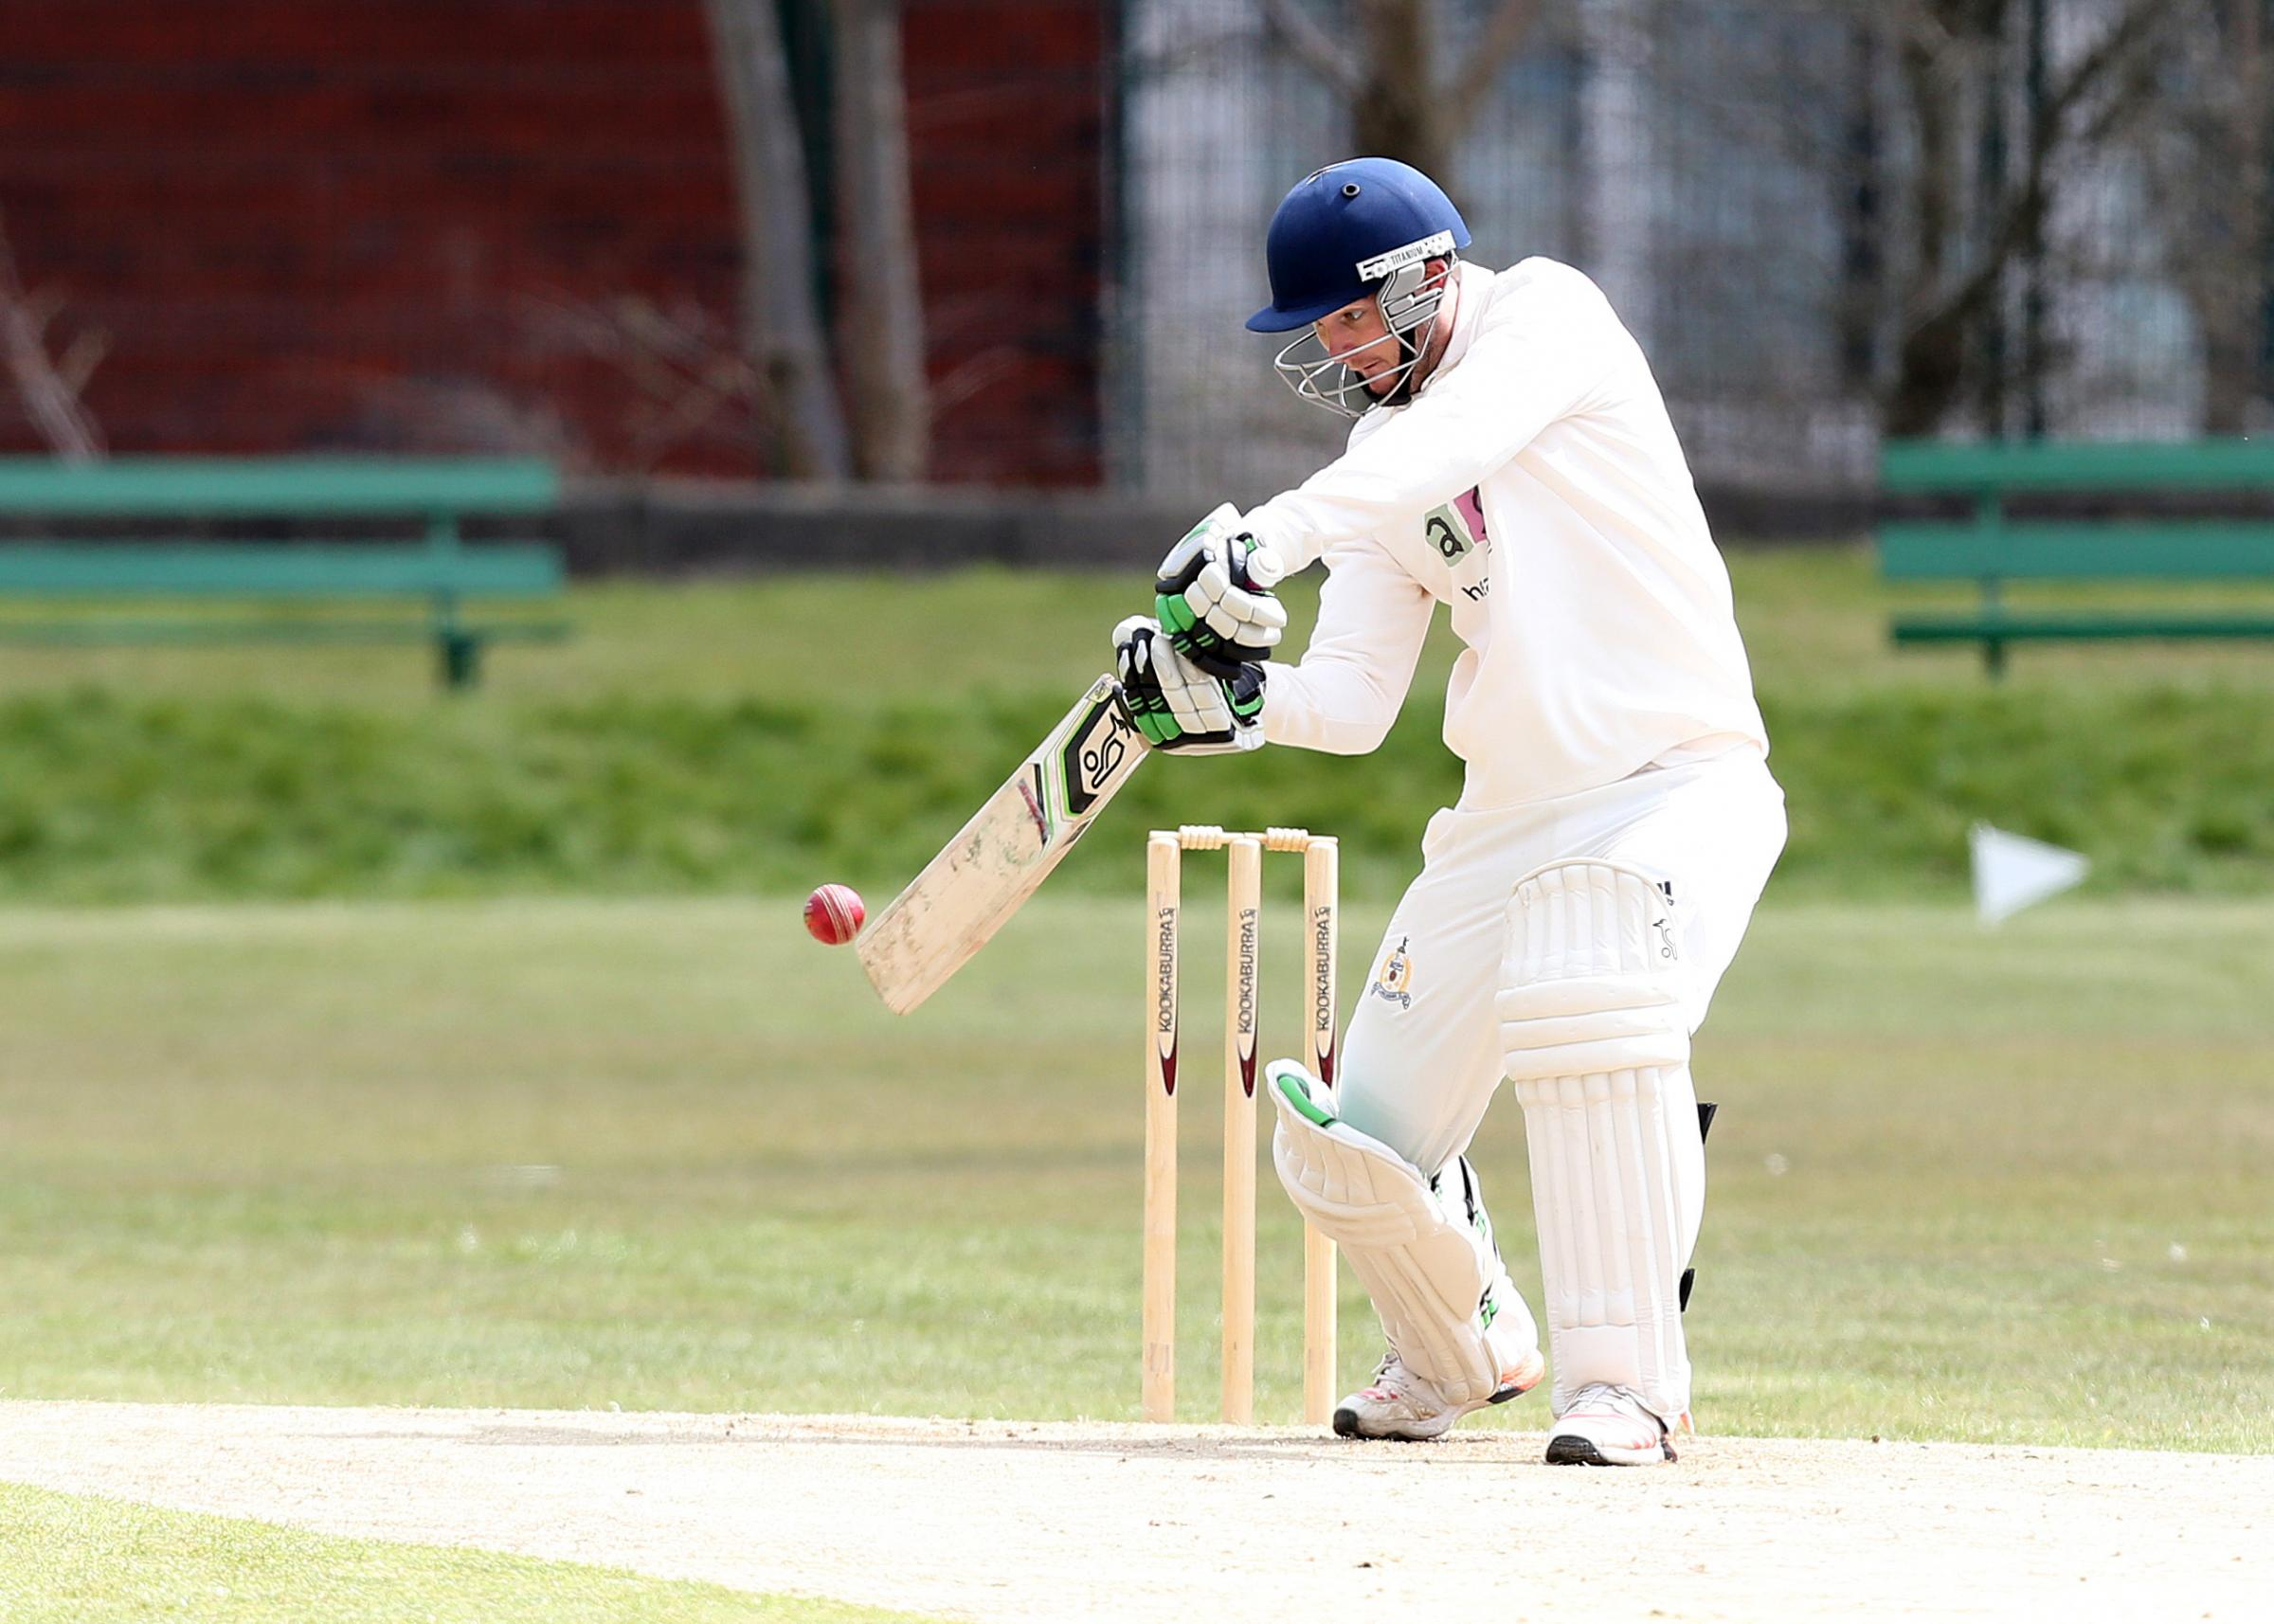 Andries Gous, who starred for Prestwich in their opening-day win at Glossop, playing for Lancashire League side East Lancs. Pic: Kippax